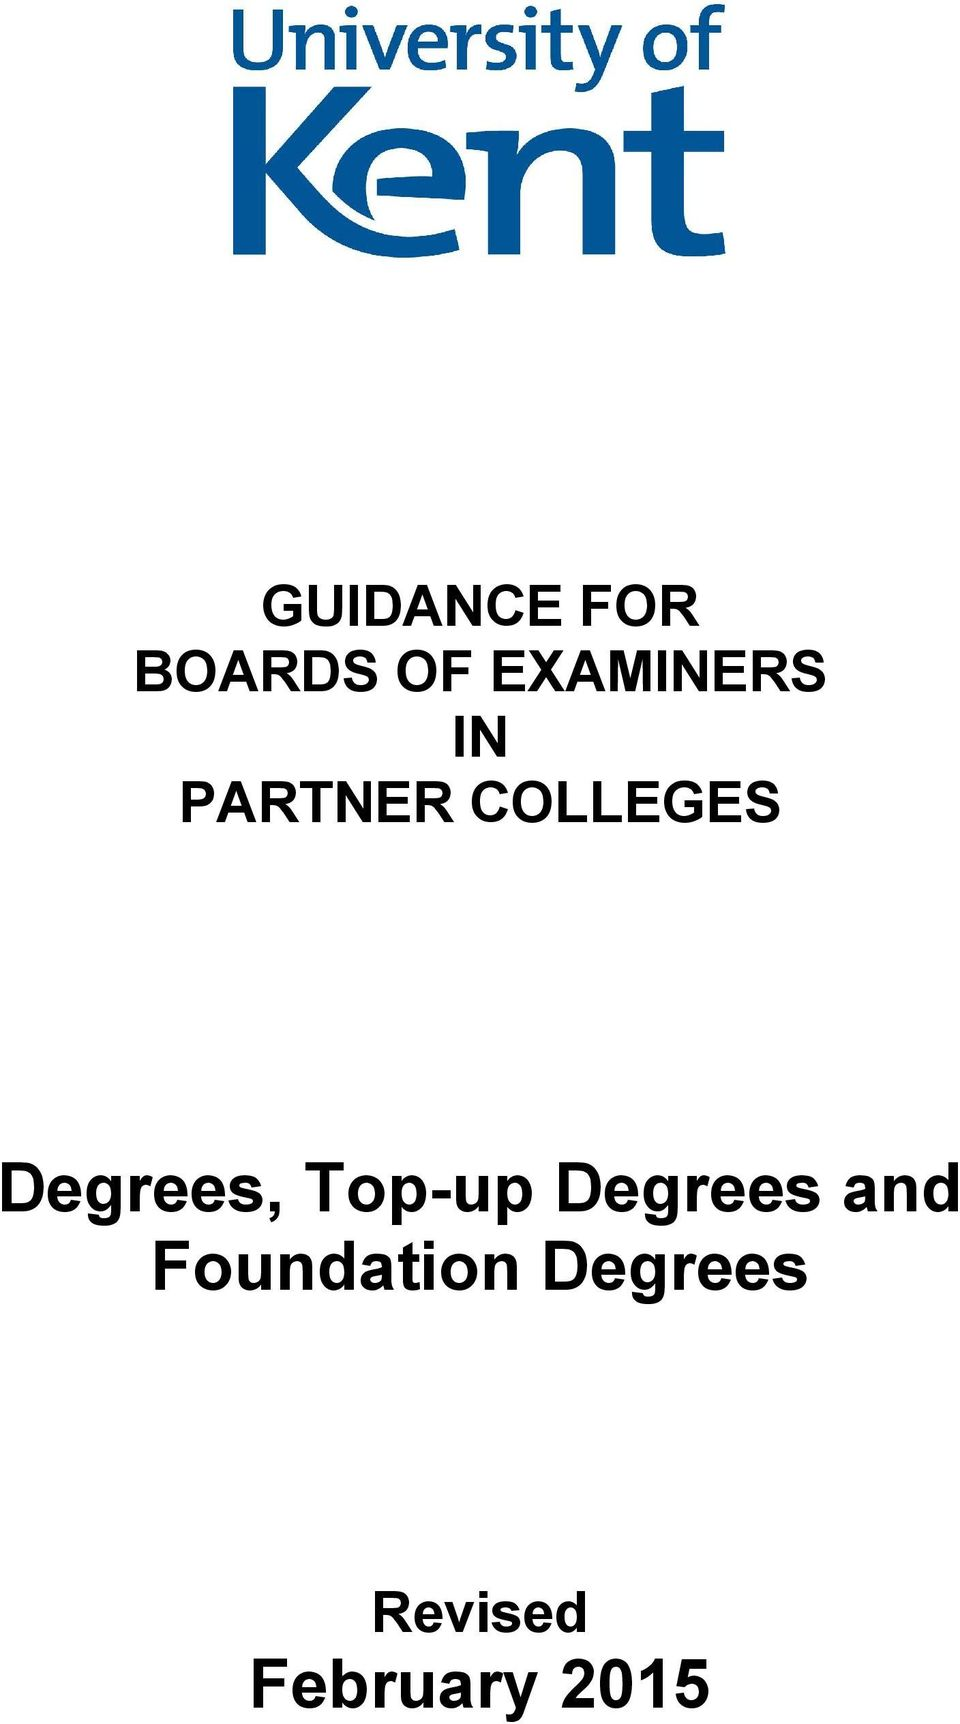 Degrees, Top-up Degrees and